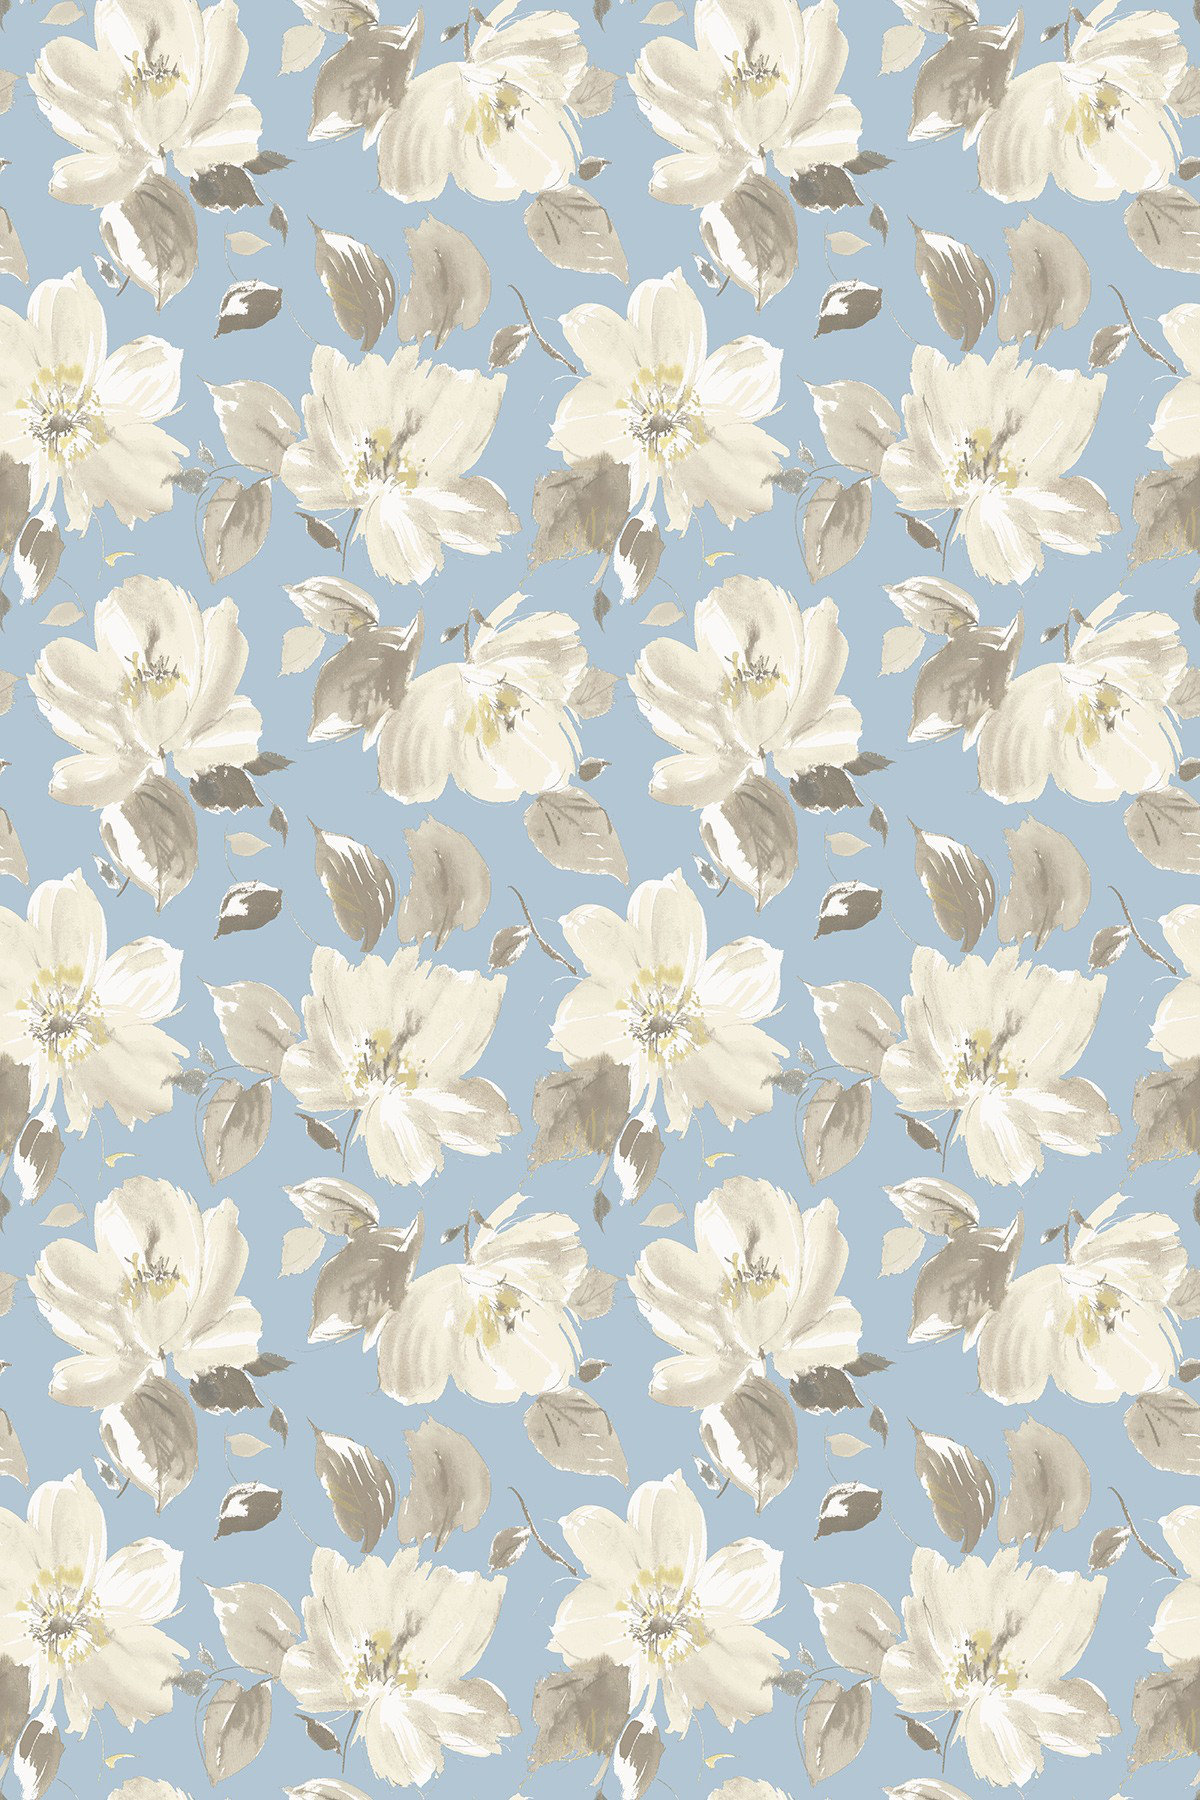 Image of Blendworth Fabric Lillie, LILLIE 4